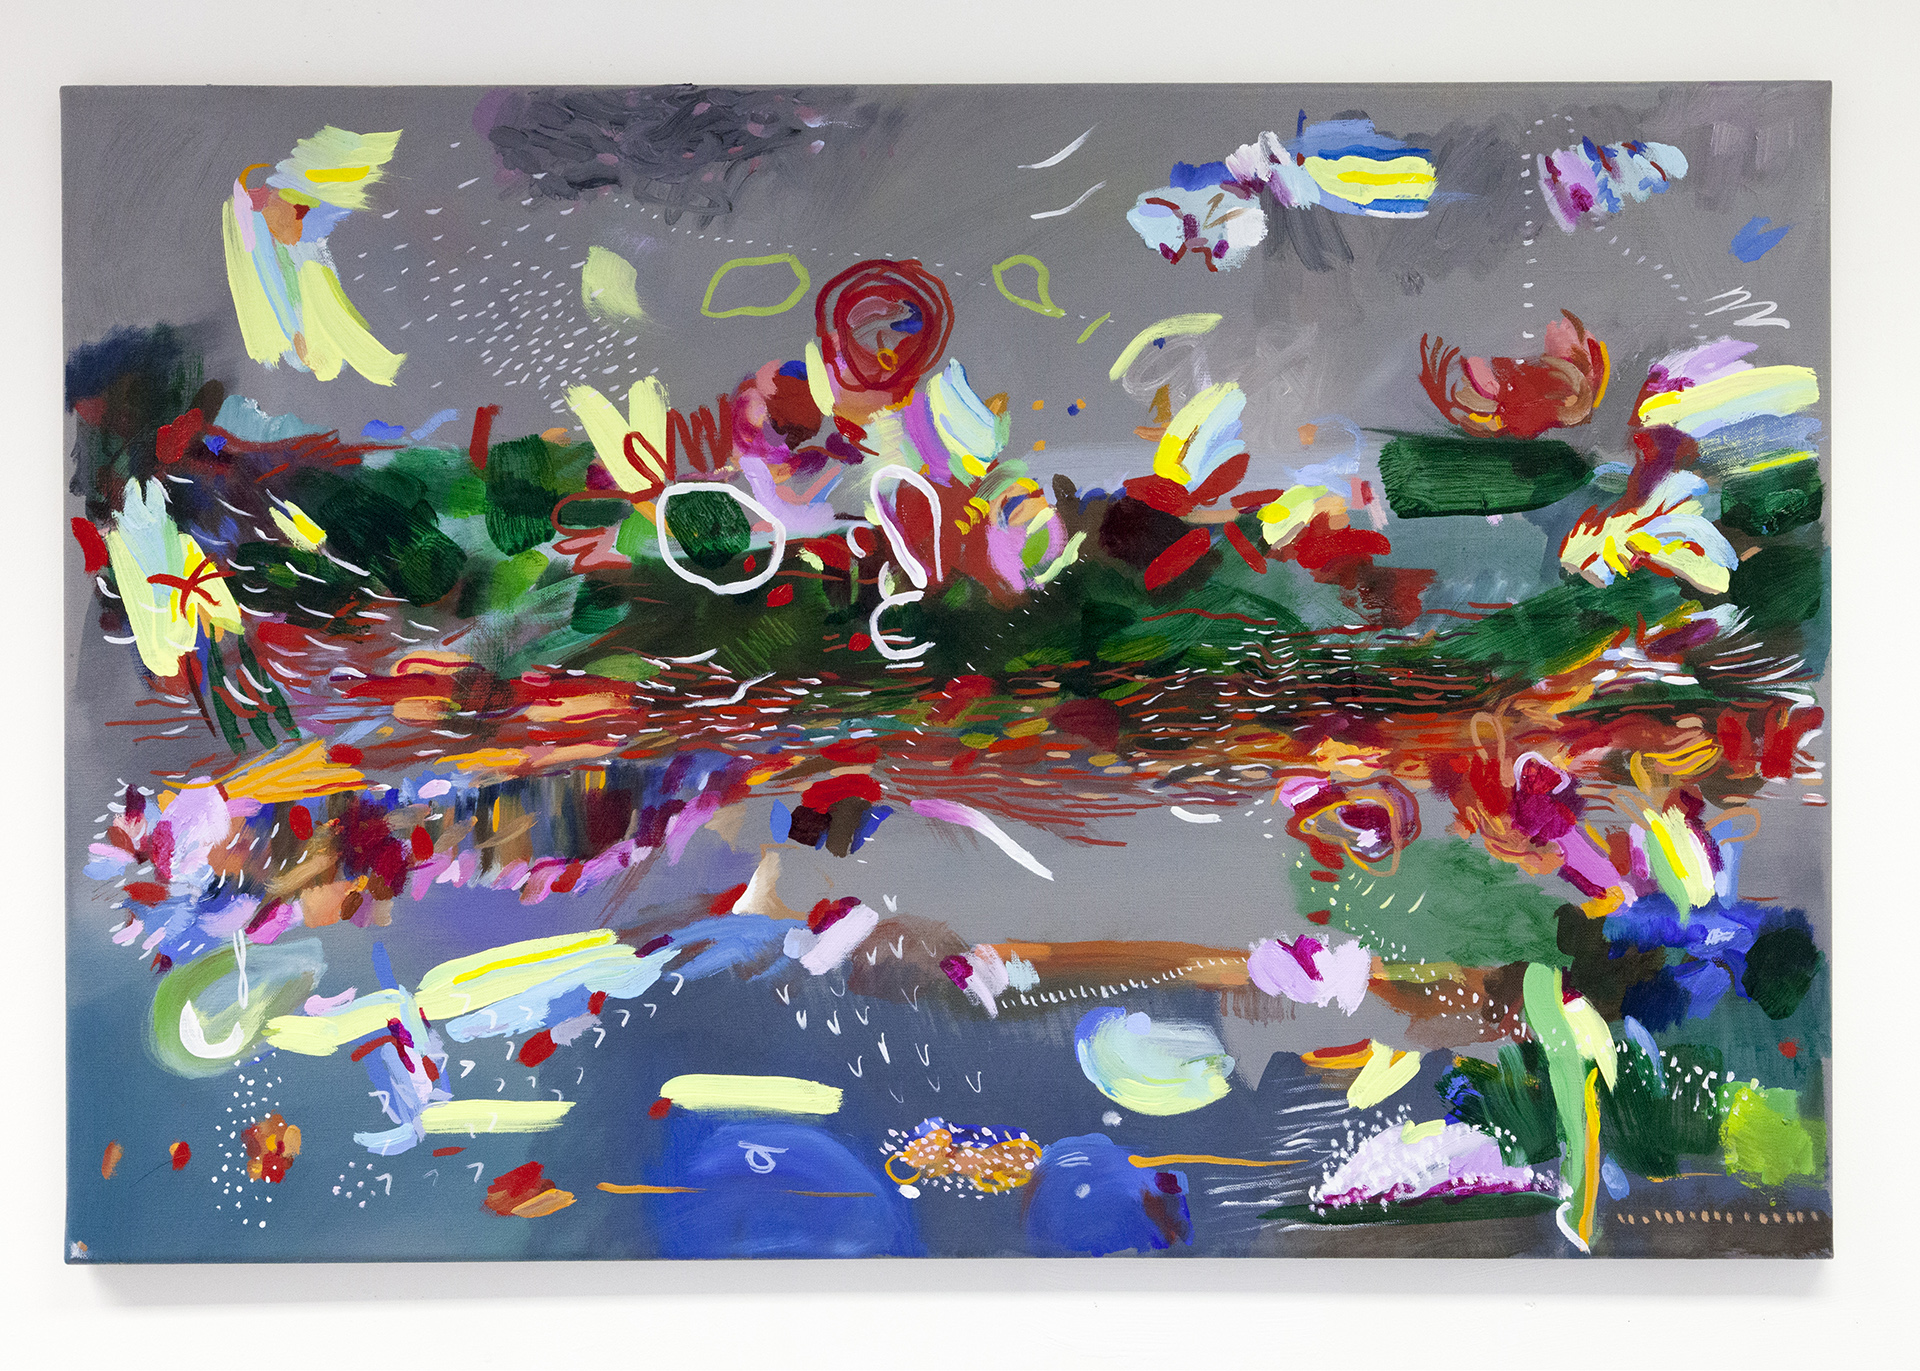 Labour II (after Petra Cortright)